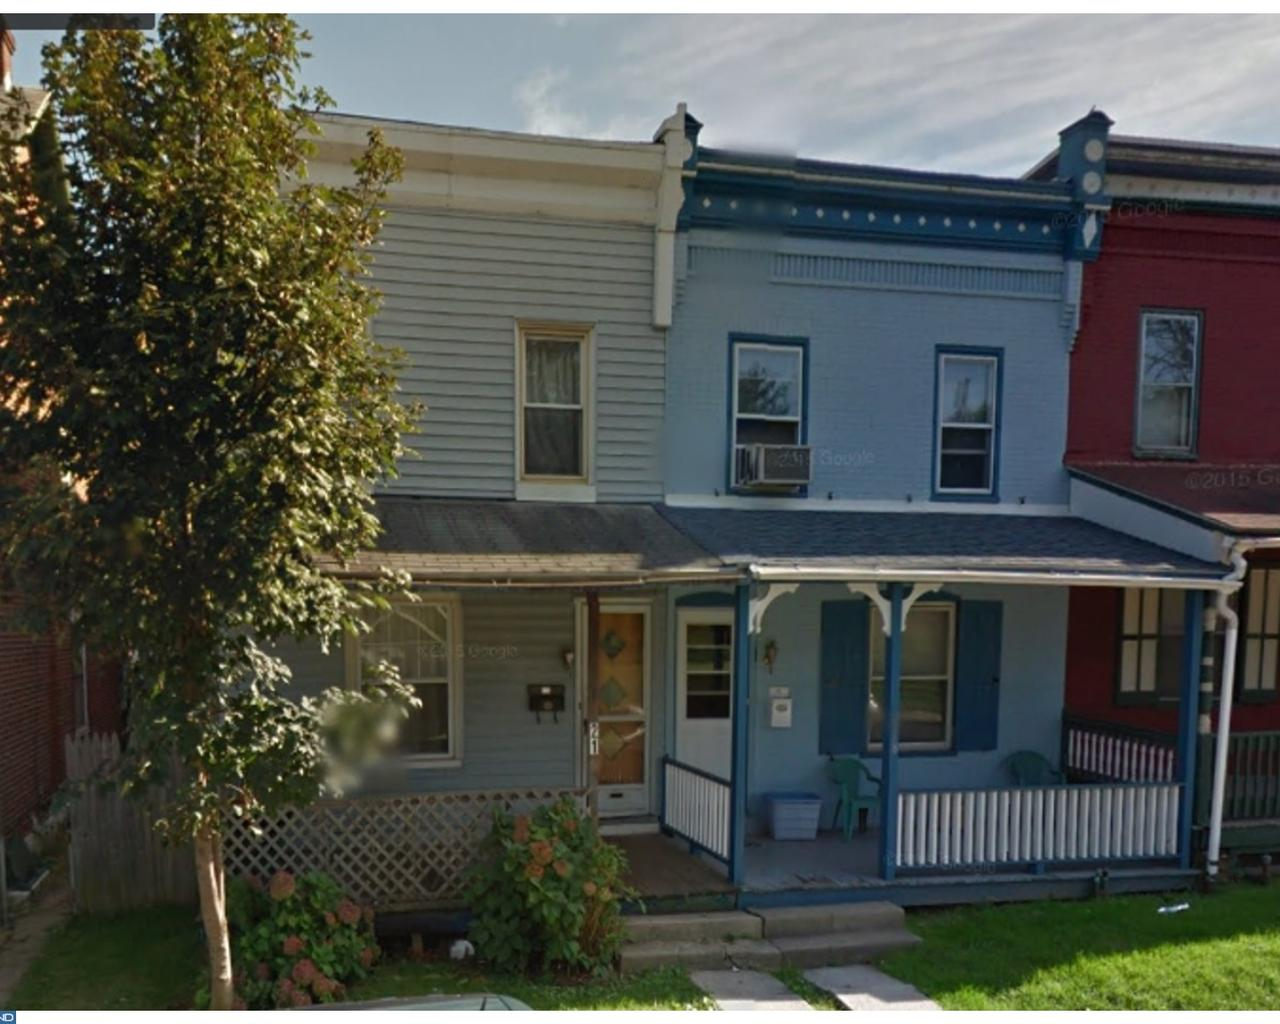 Property for sale at 216 CHARLES ST, Coatesville,  PA 19320